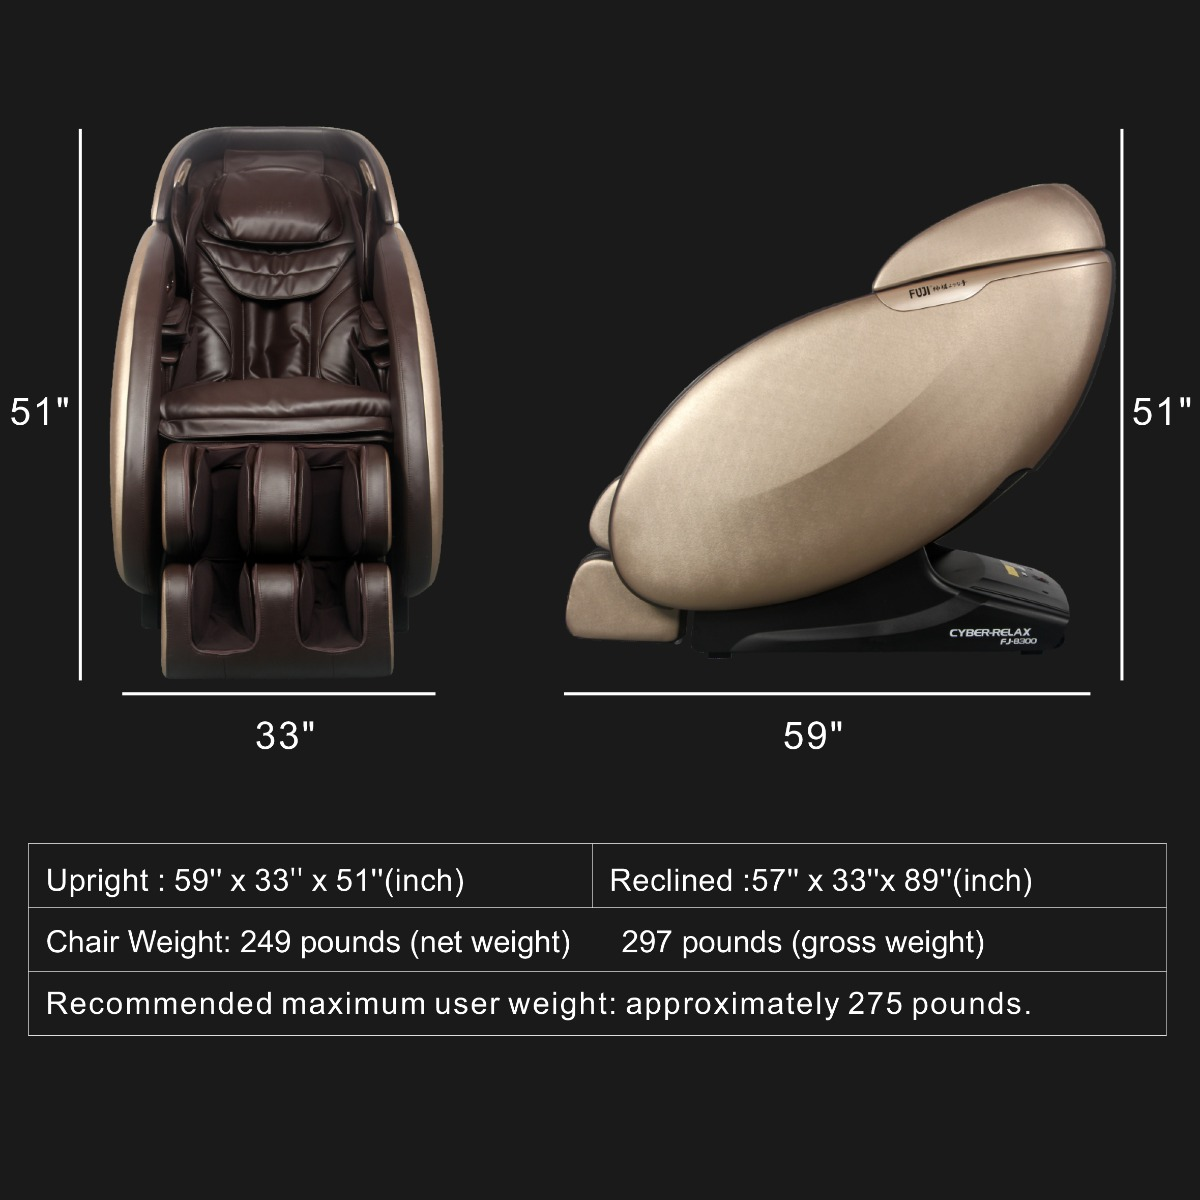 FJ-8300-drfuji-massage-chair-25-dimension